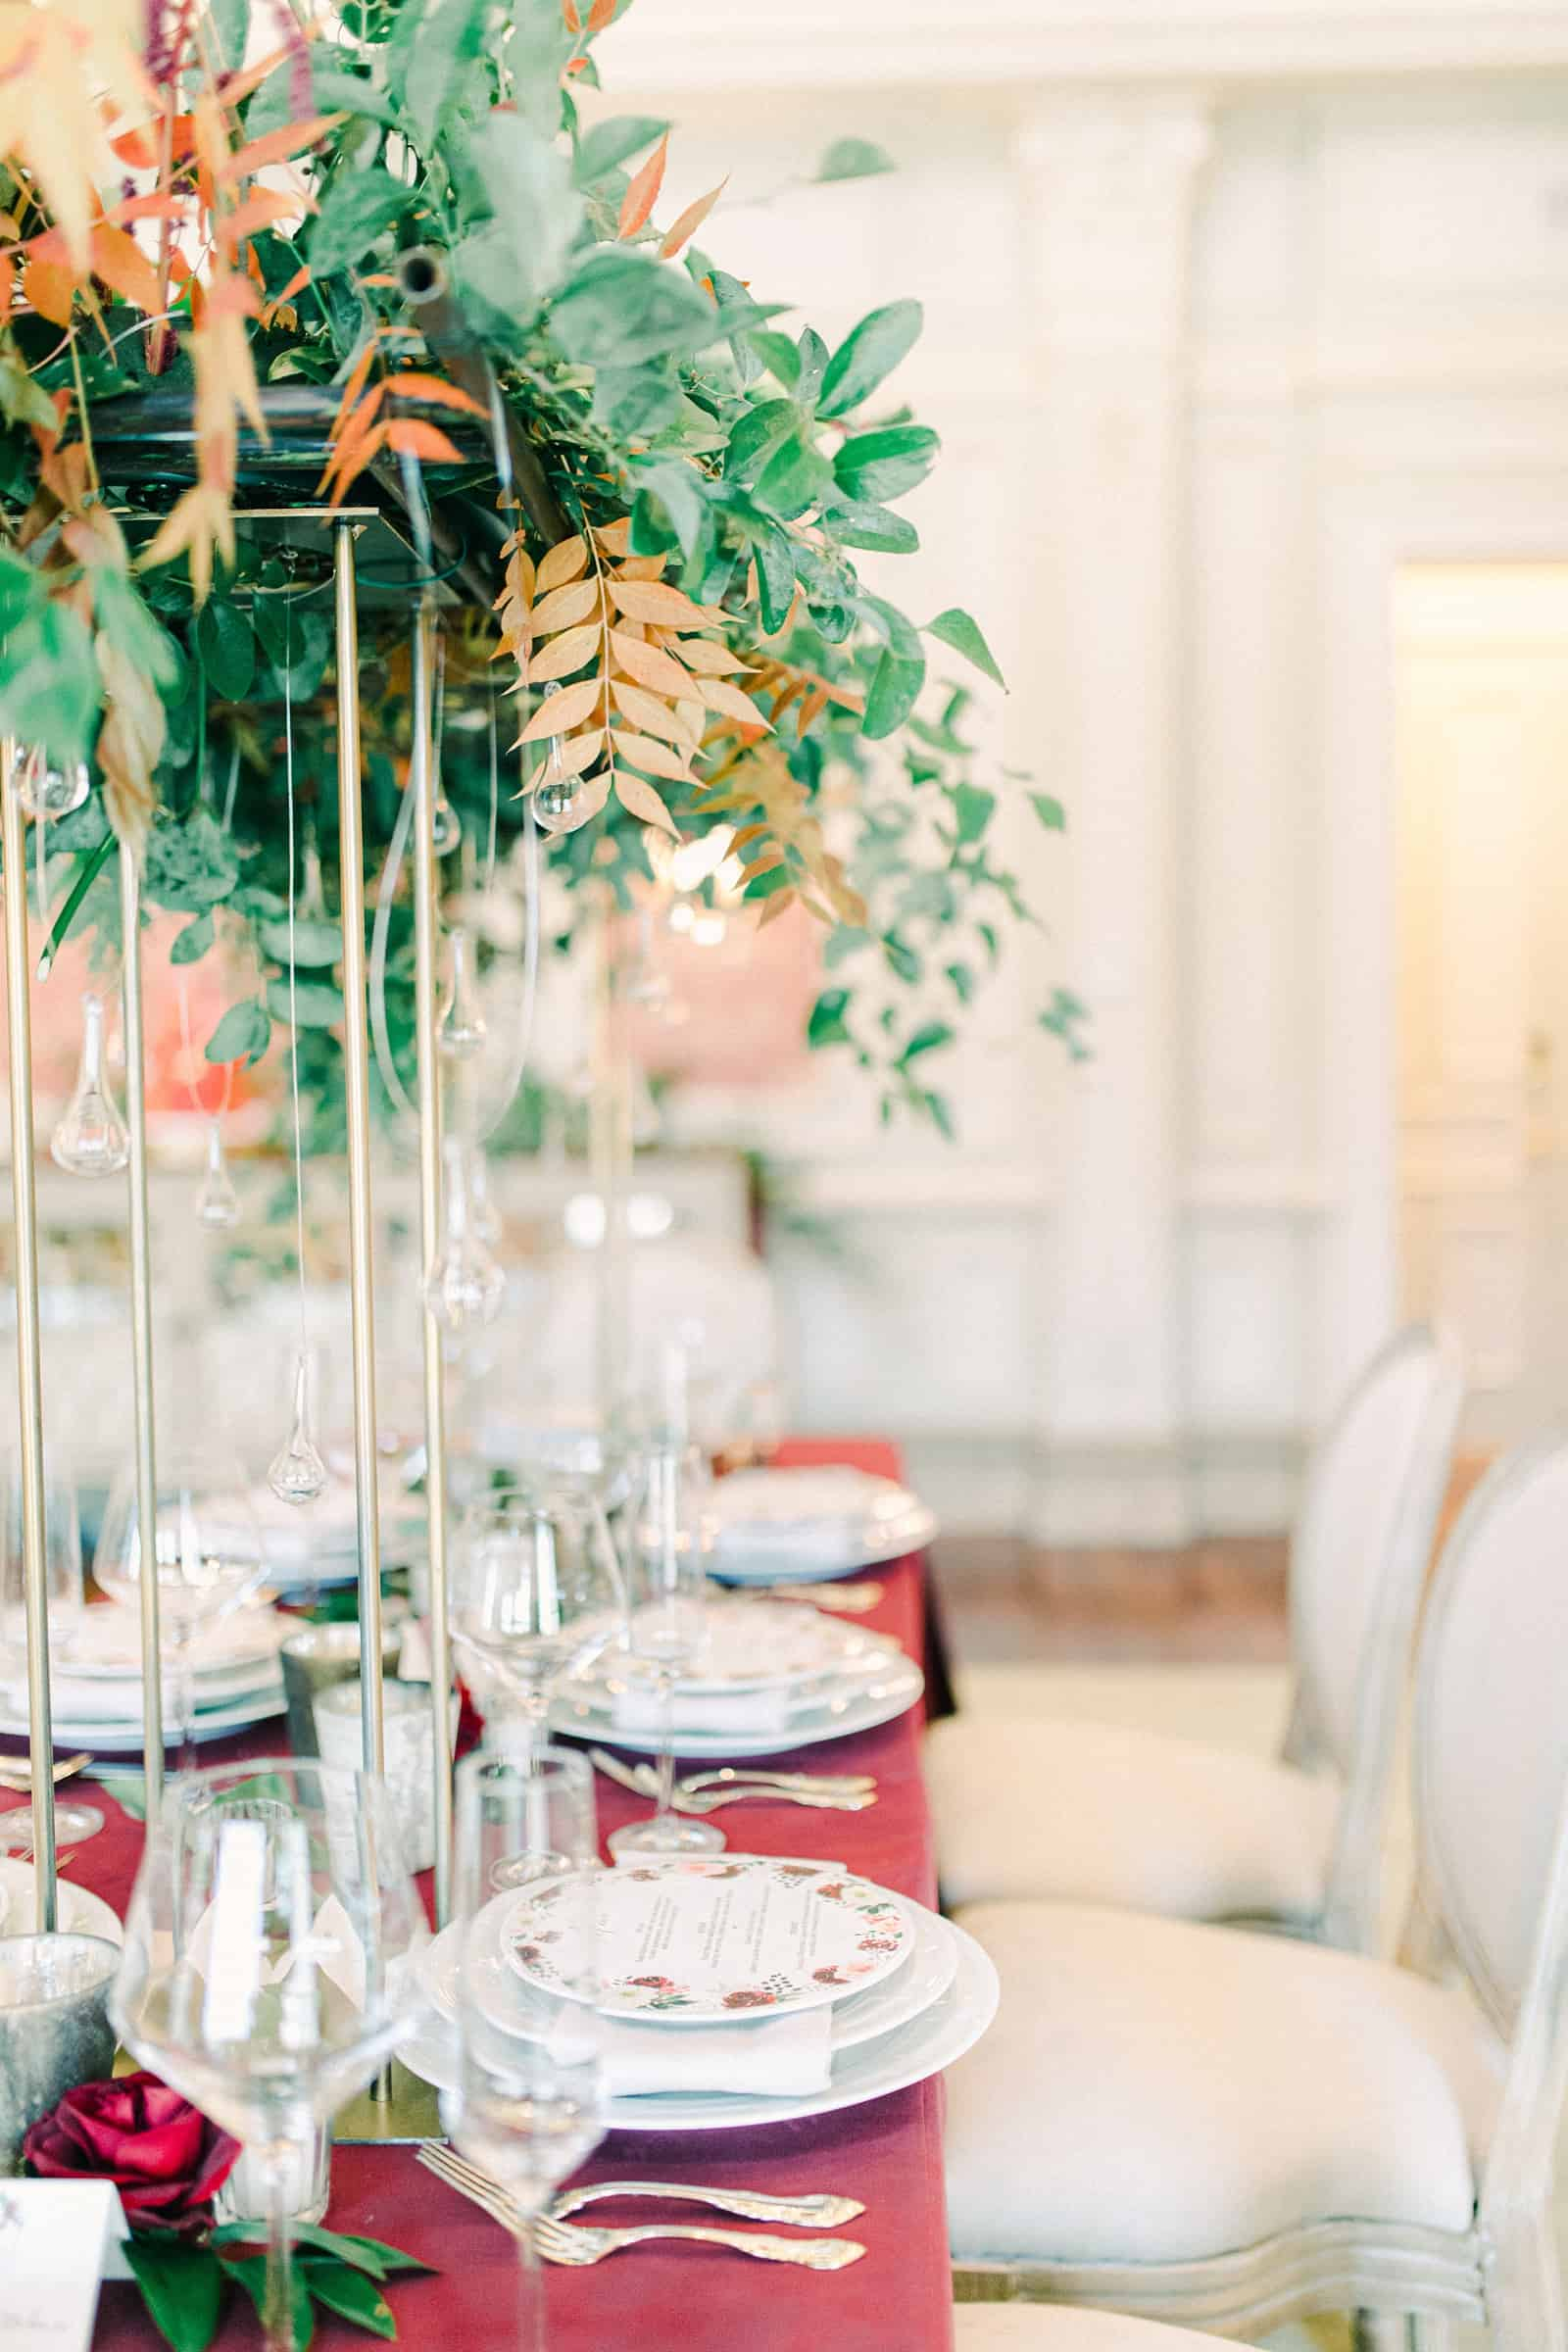 Wedding table with burgundy tablecloth and tall centerpieces